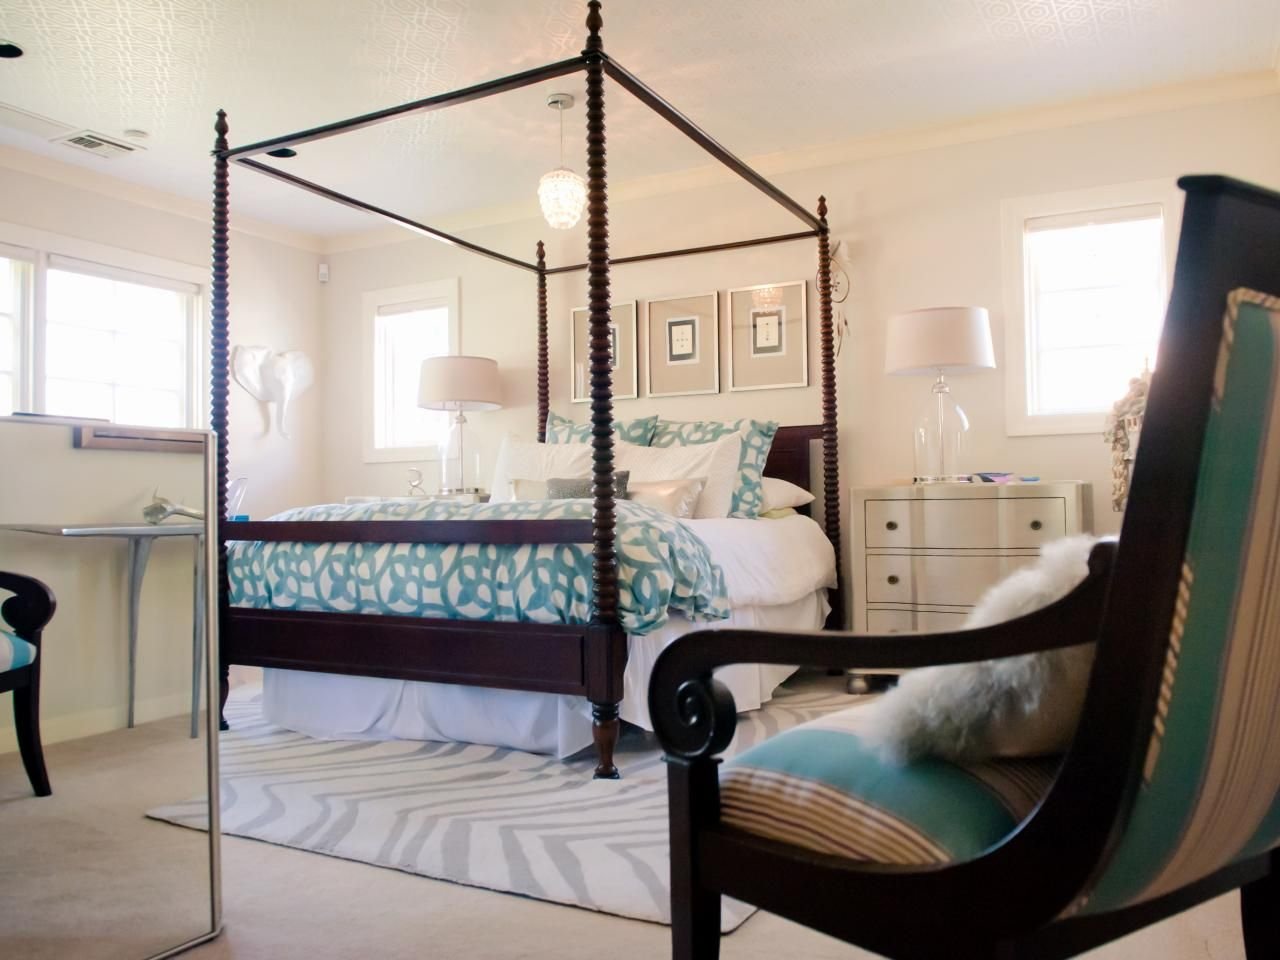 Classic black and white furnishings pair with teal accents in the bed  linens and chair upholstery. Classic black and white furnishings pair with teal accents in the